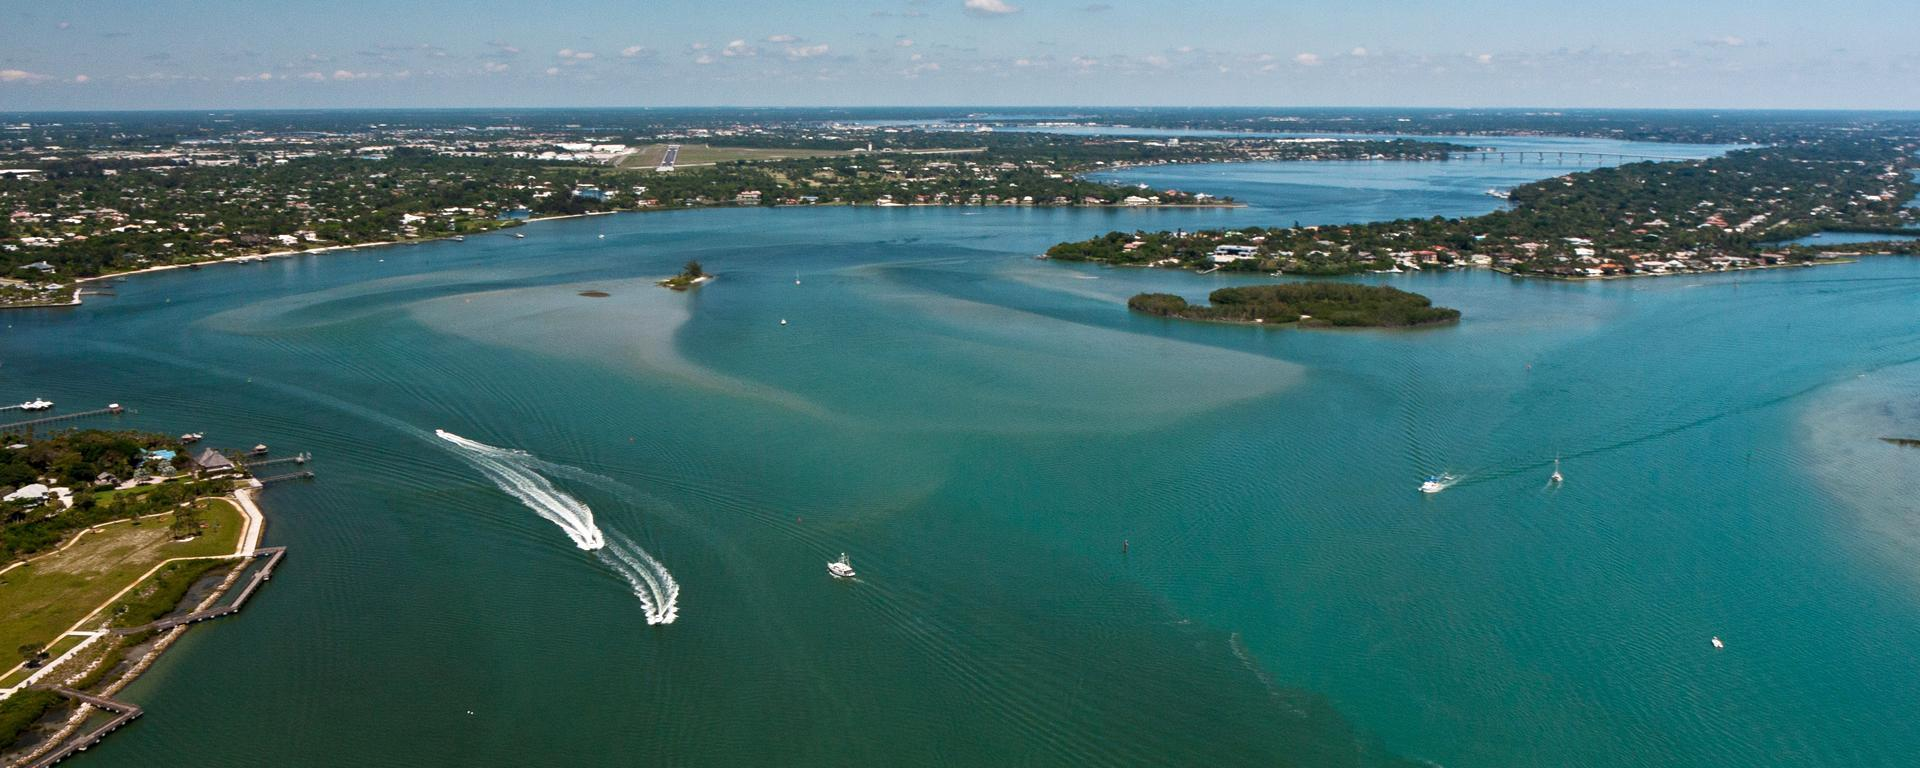 St. Lucie Inlet and River